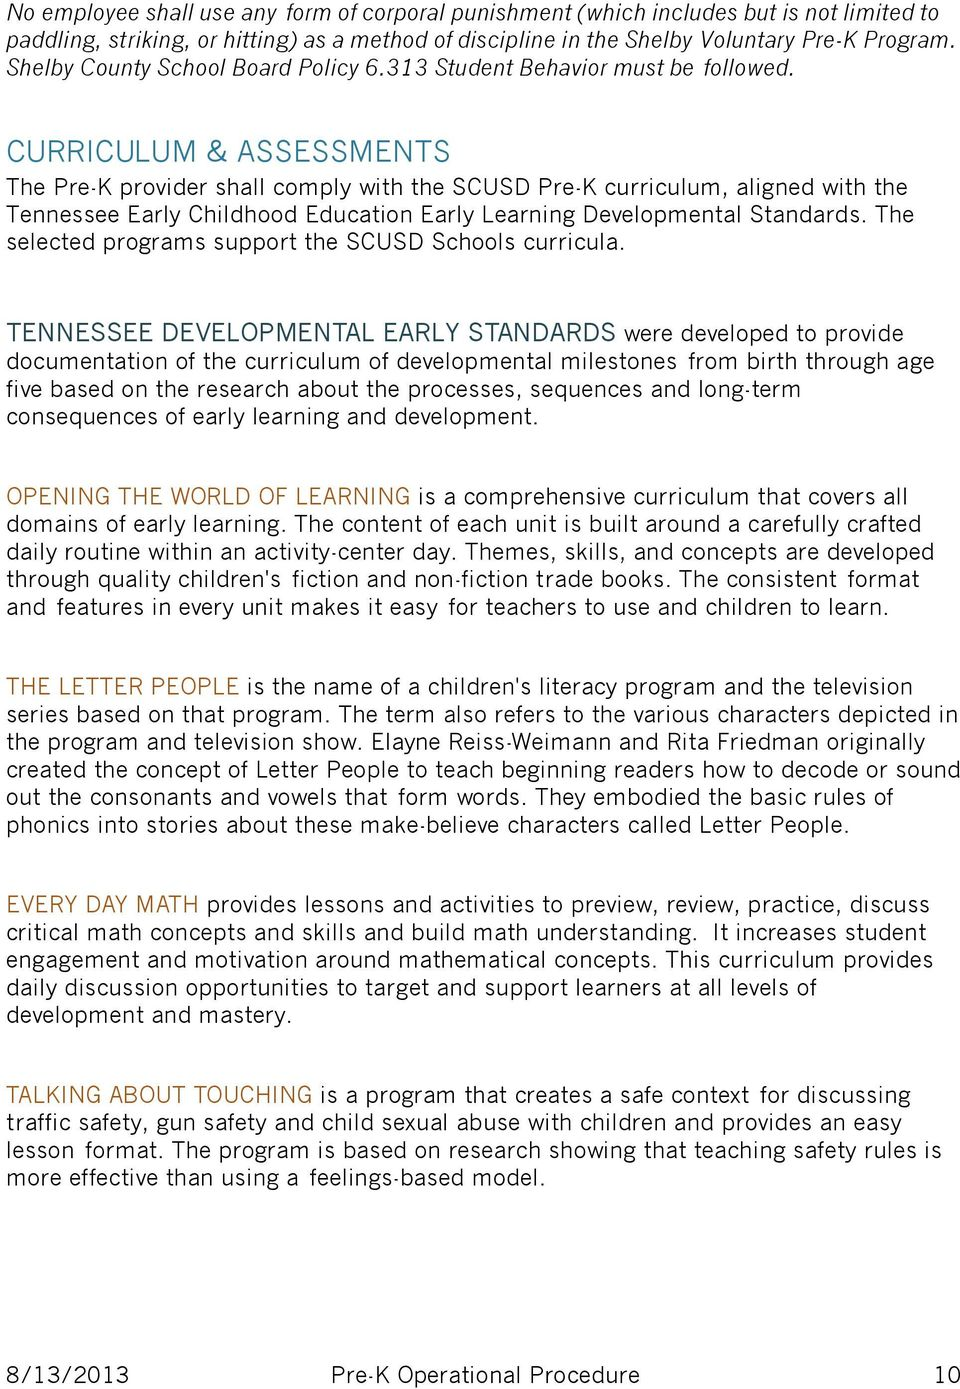 CURRICULUM & ASSESSMENTS The Pre-K provider shall comply with the SCUSD Pre-K curriculum, aligned with the Tennessee Early Childhood Education Early Learning Developmental Standards.